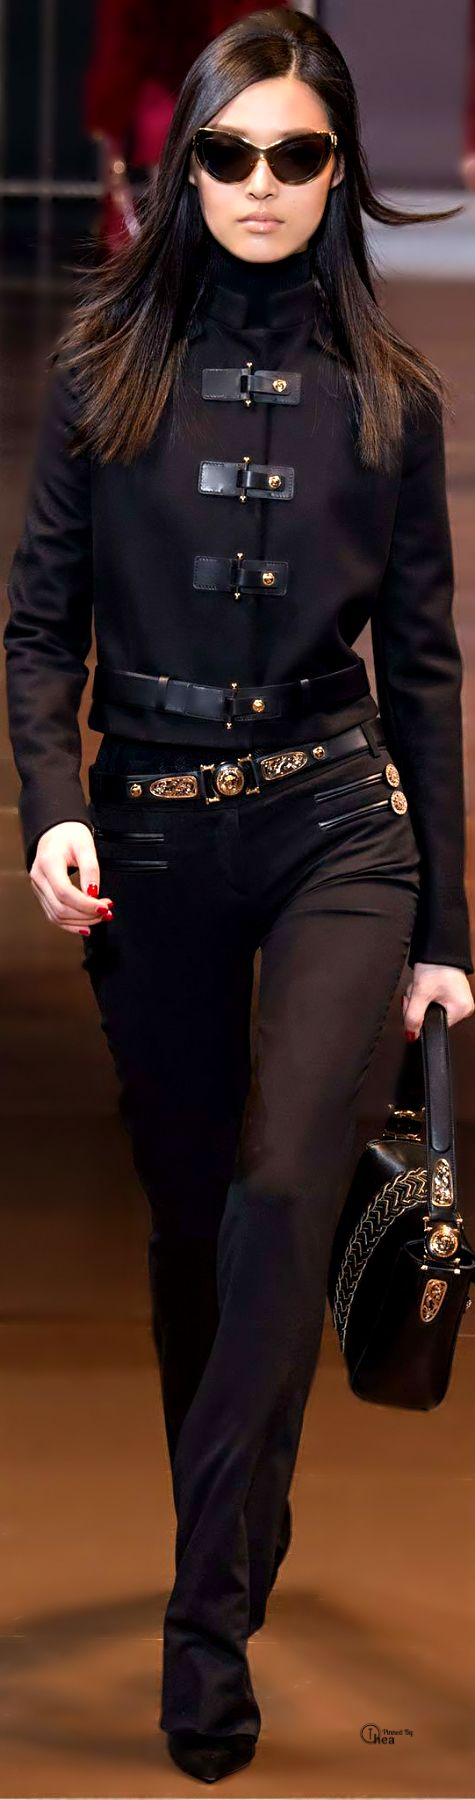 Versace Fall 2014. I adore the black biker jacket with leather and gold-dome buckles, and the jeans are absolutely kick-ass. I wouldn't mind wearing something this awesome during the zombie apocalypse!